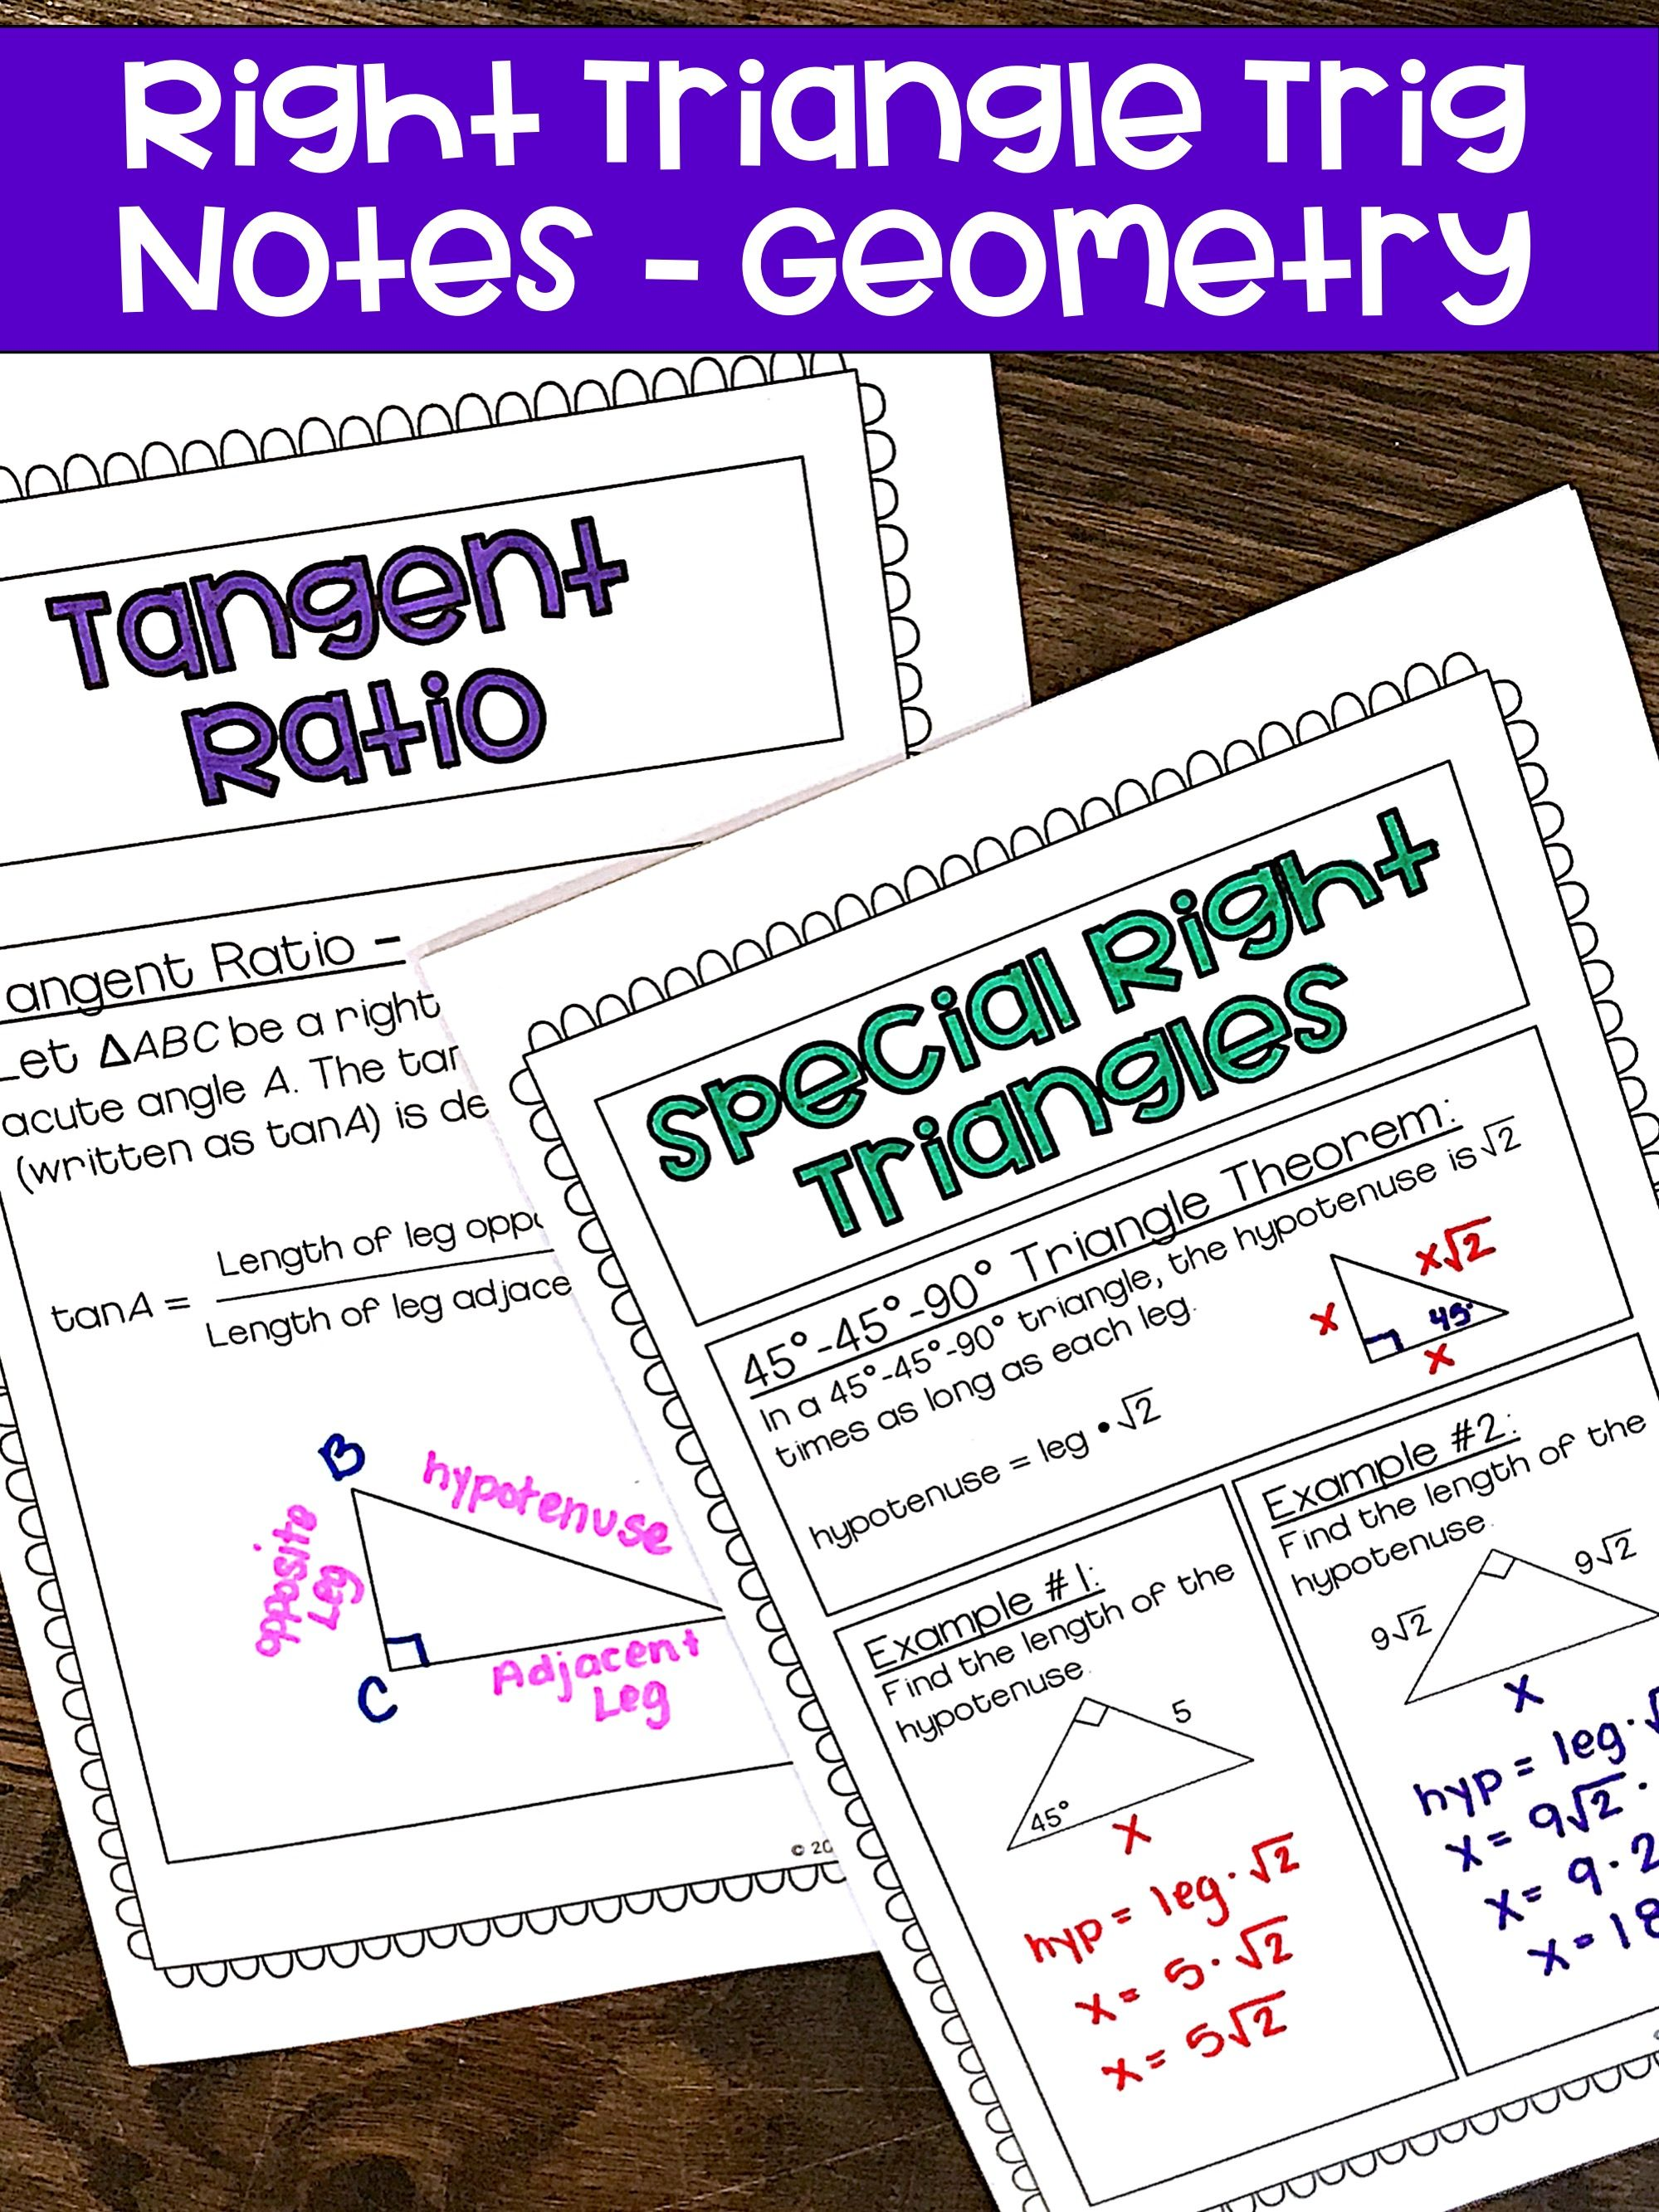 Right Triangle Trigonometry Geometry